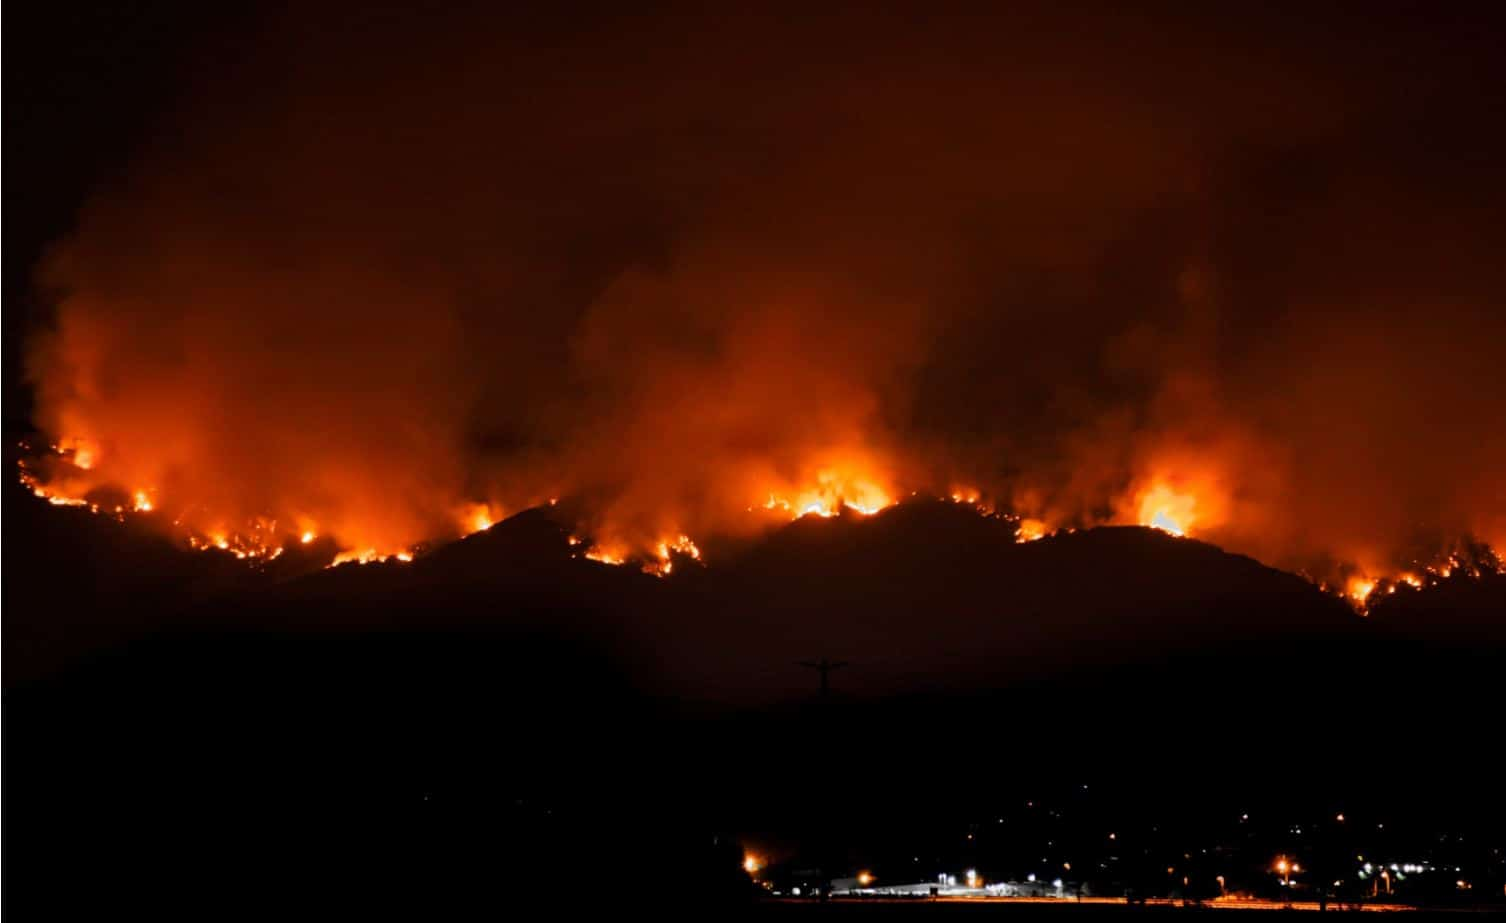 Lack of Wireless Alerts  WEA during CA wildfire stresses public safety awareness for CRE owners